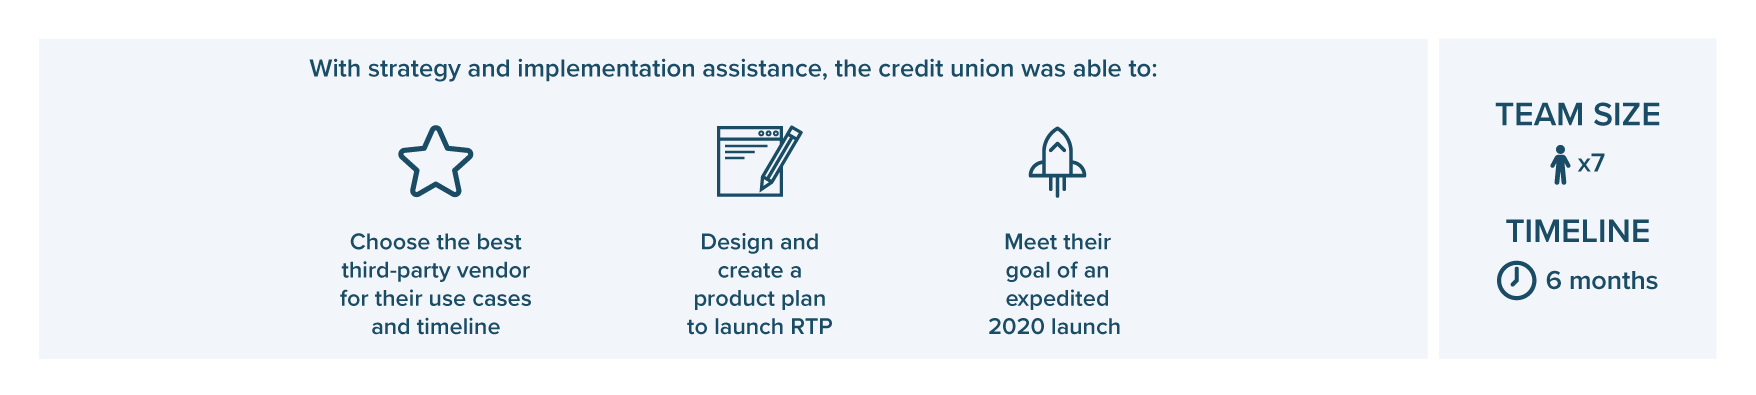 Regional+Credit+Union-Case-Study-Results